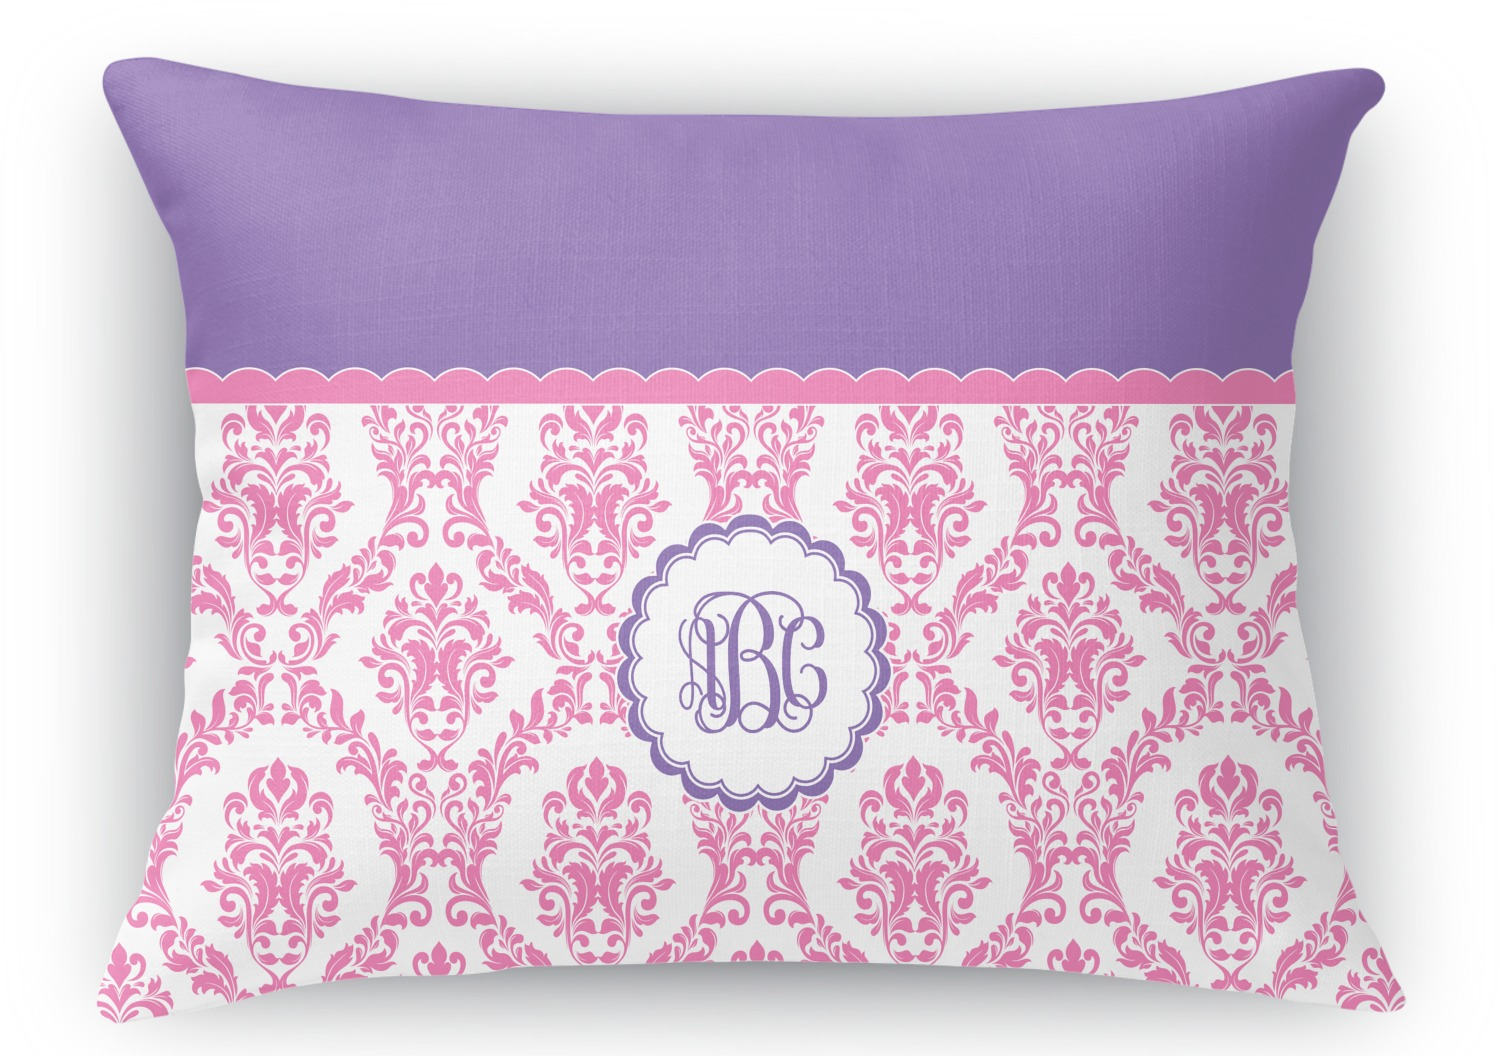 Purple And White Decorative Pillows : Pink, White & Purple Damask Rectangular Throw Pillow - 18 ...